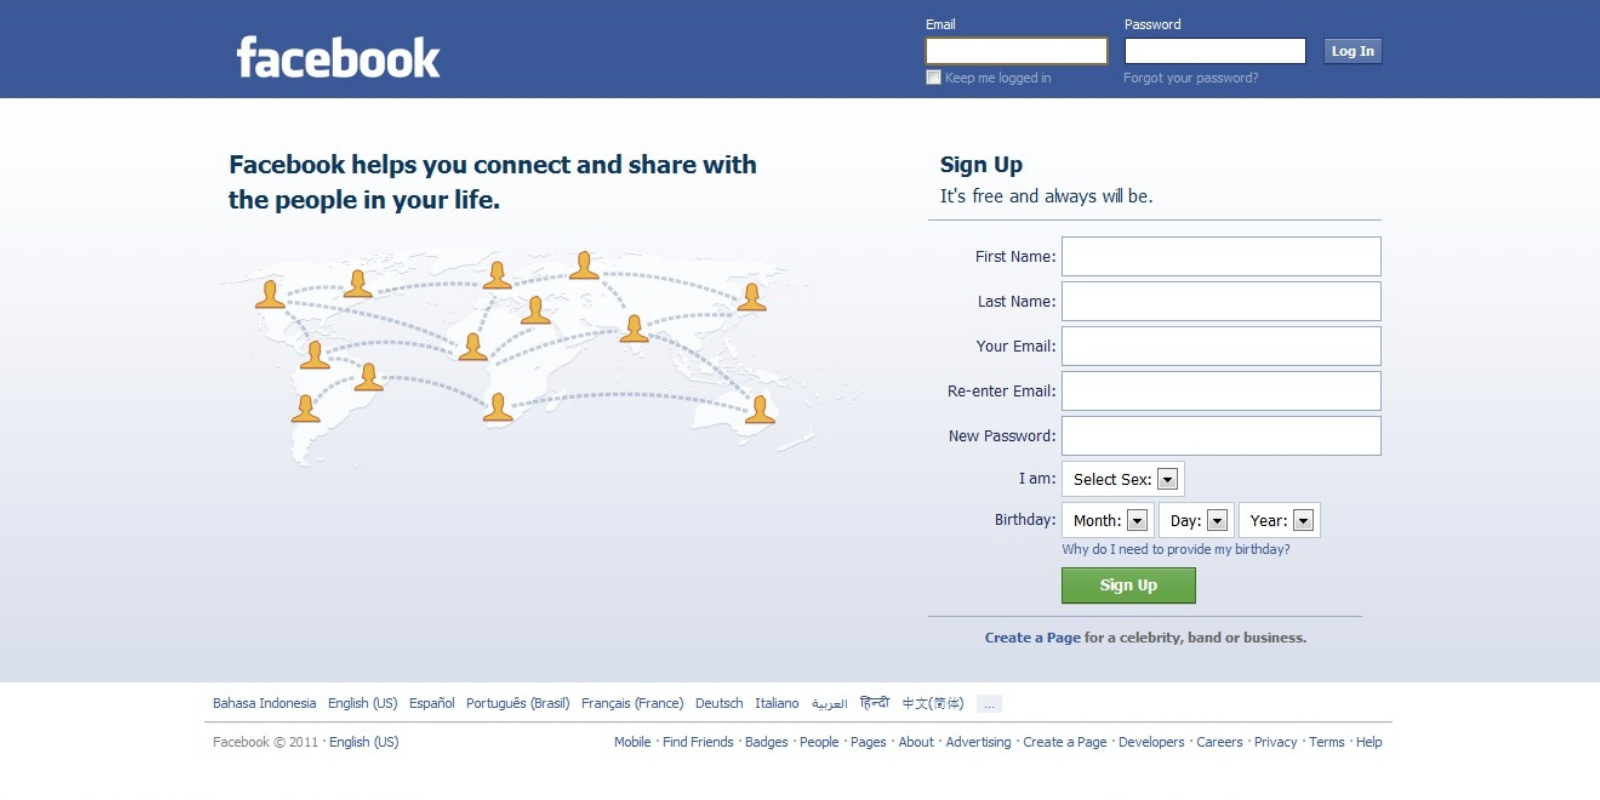 Facebook restricts promotion of new groups, existing political groups before election